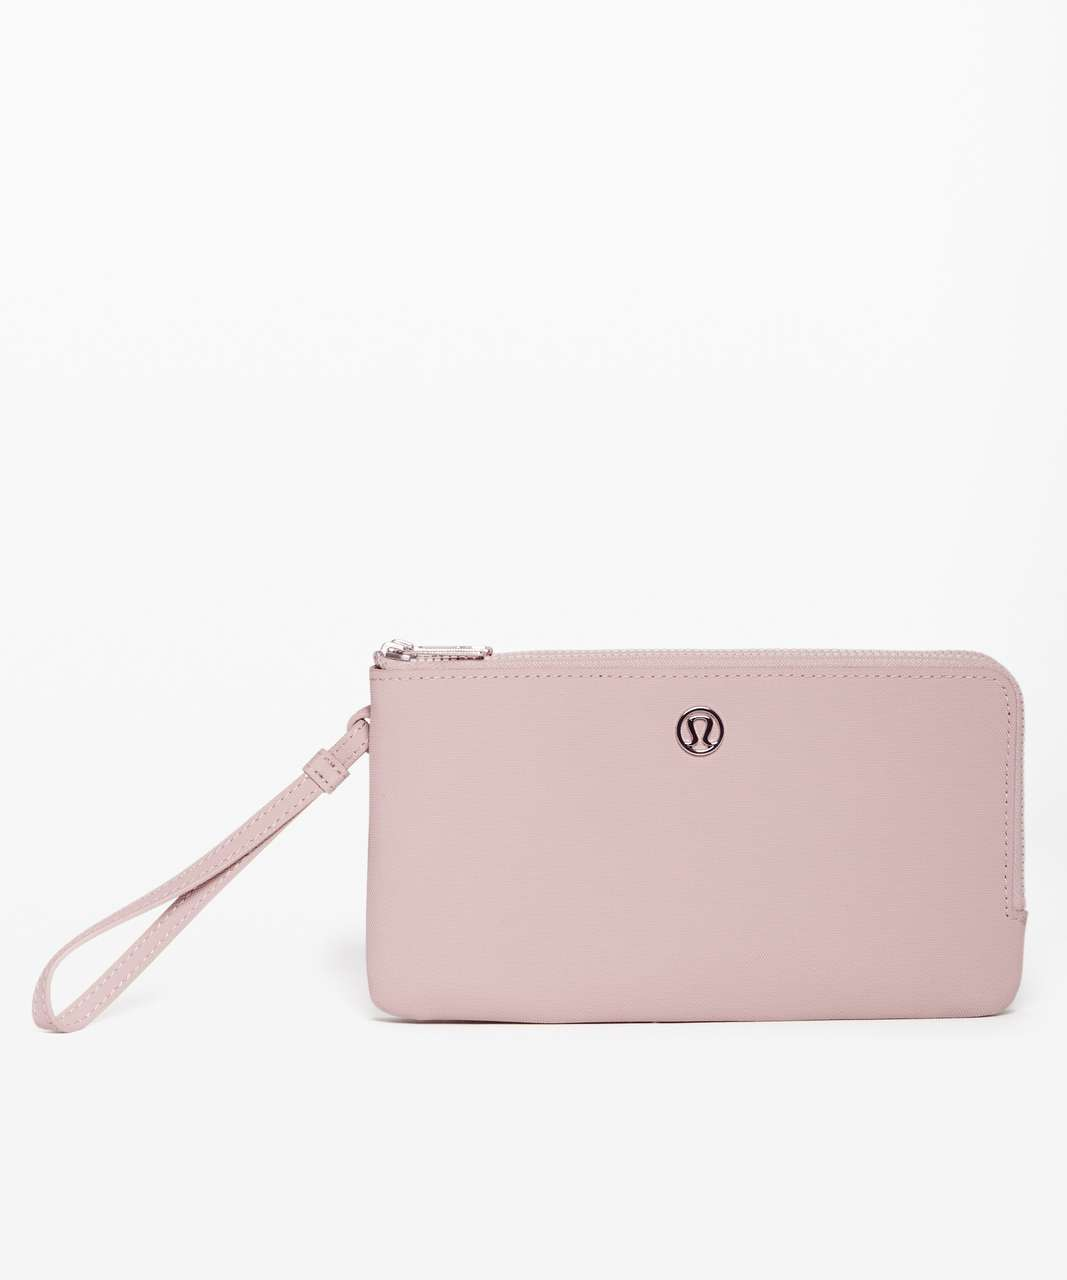 Lululemon Double Up Pouch - Muse